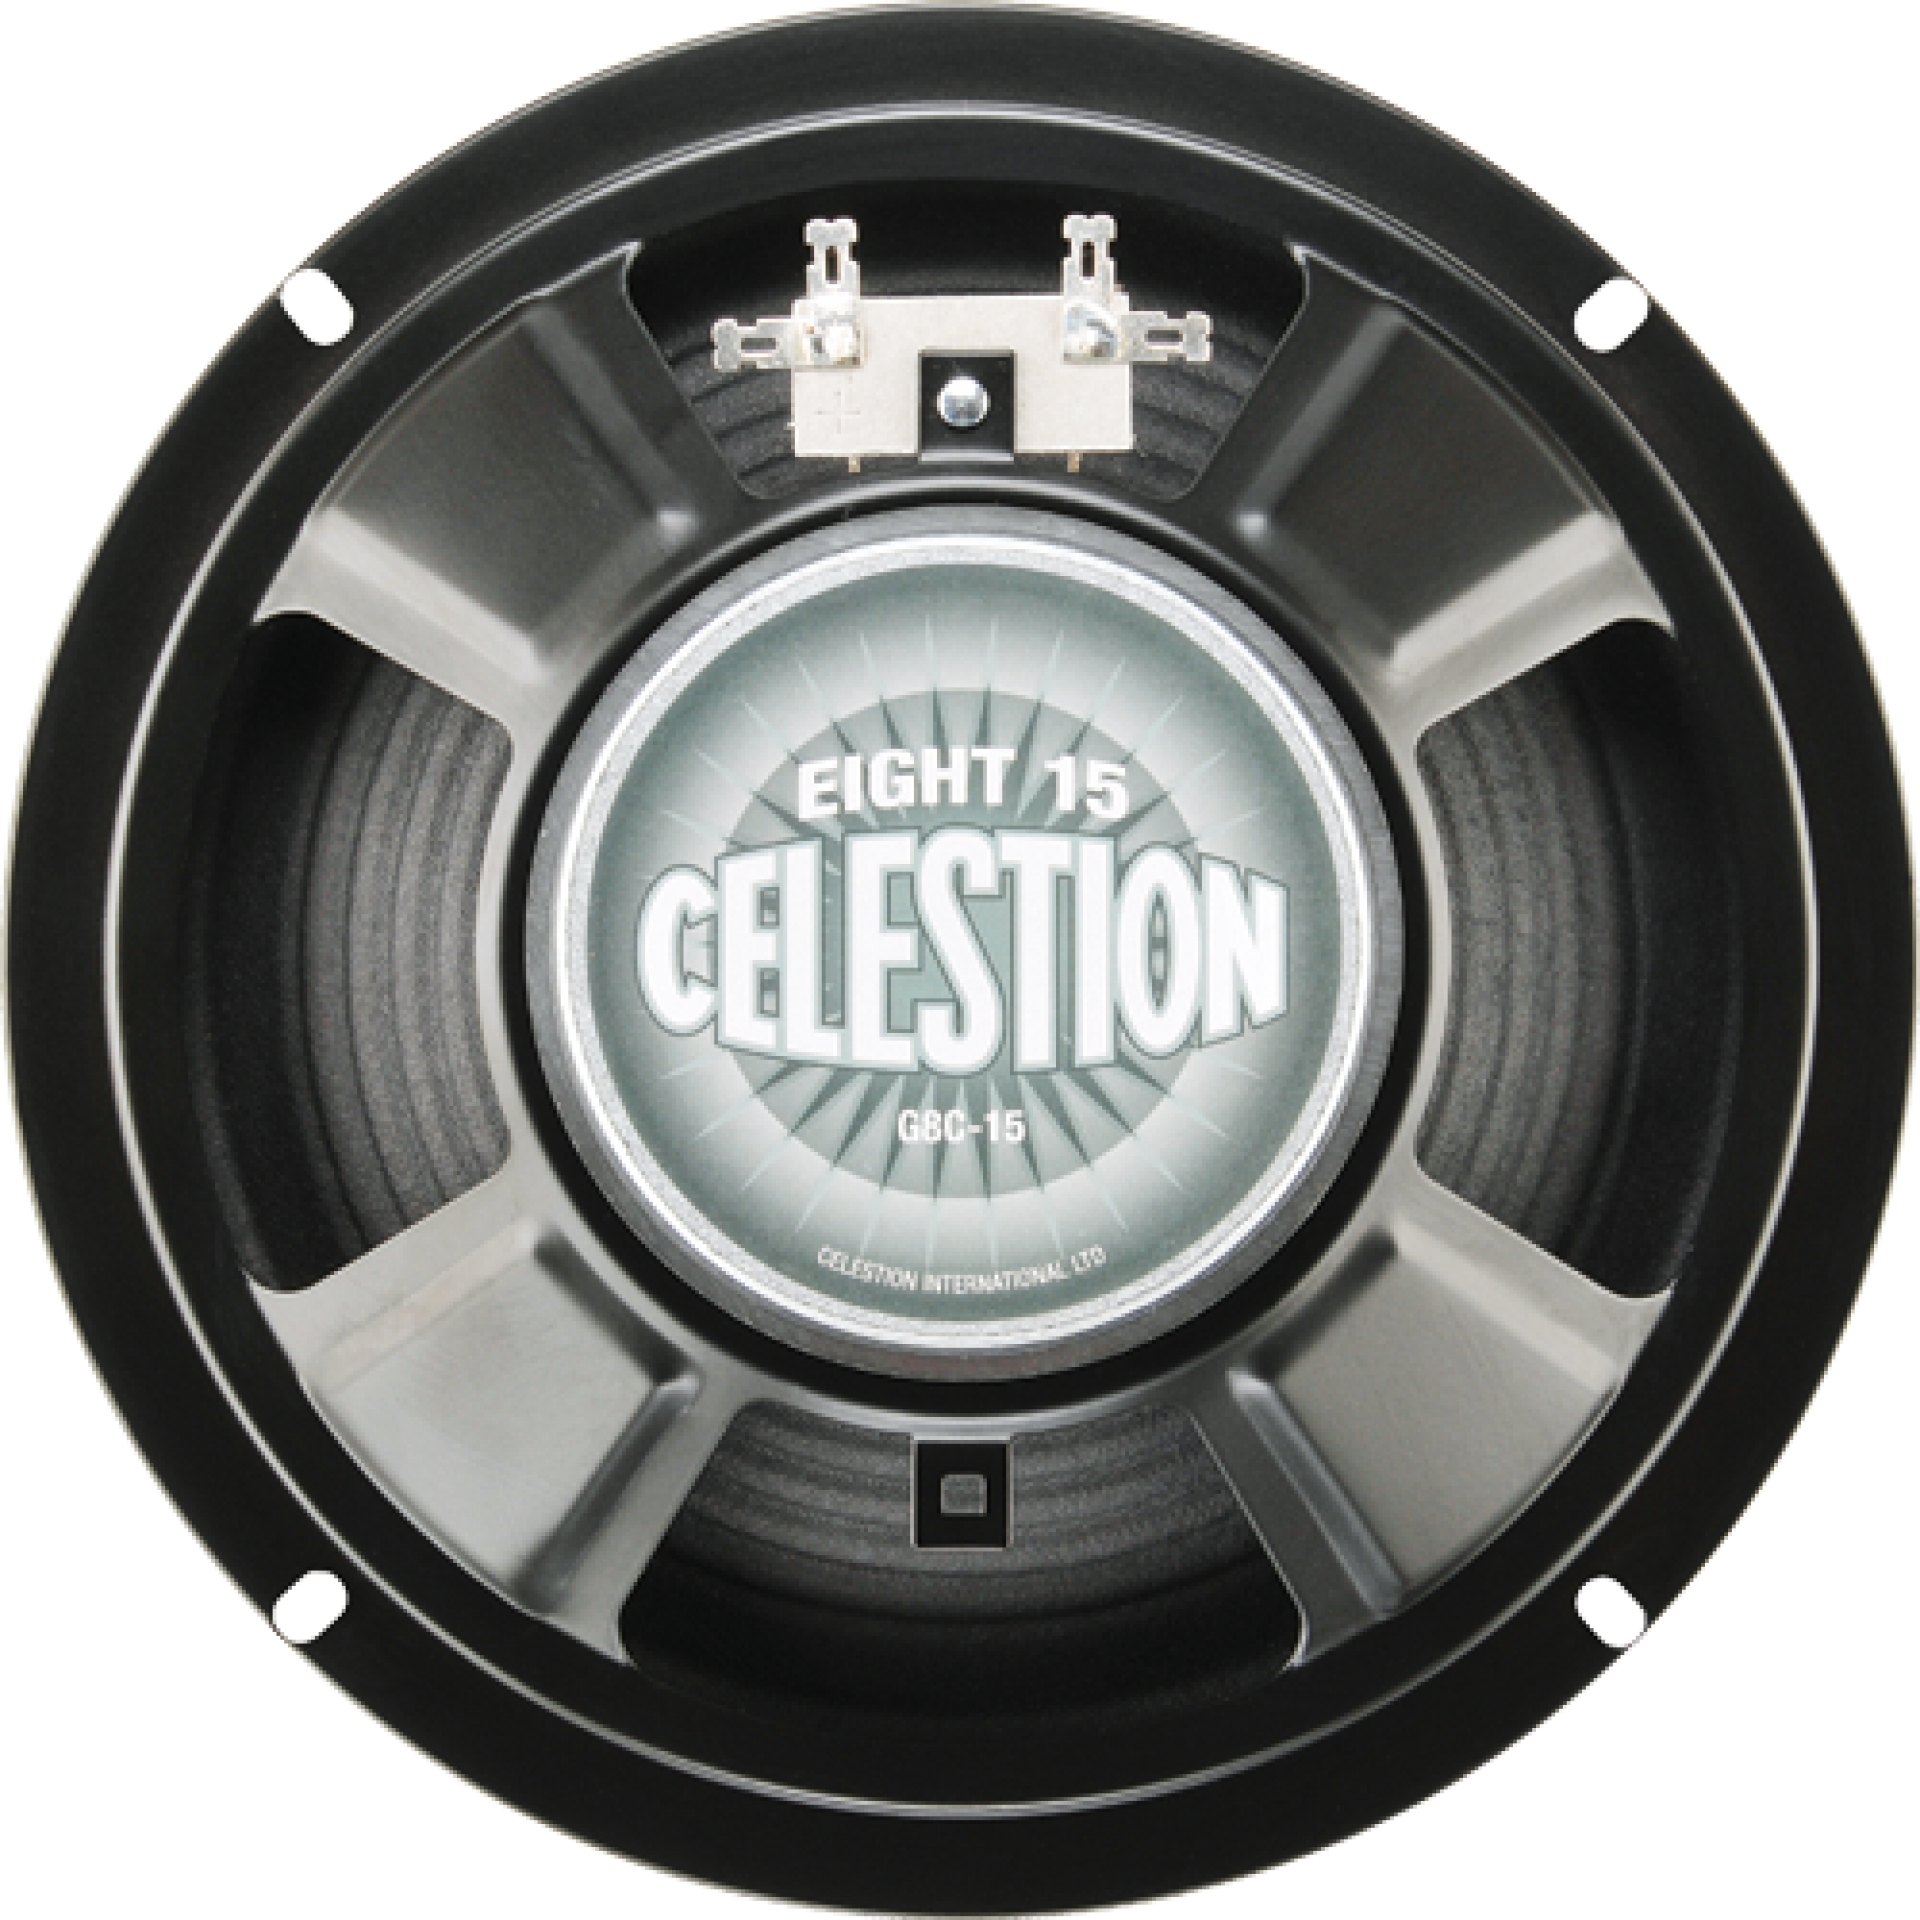 CELESTION Eight 15 4ohm